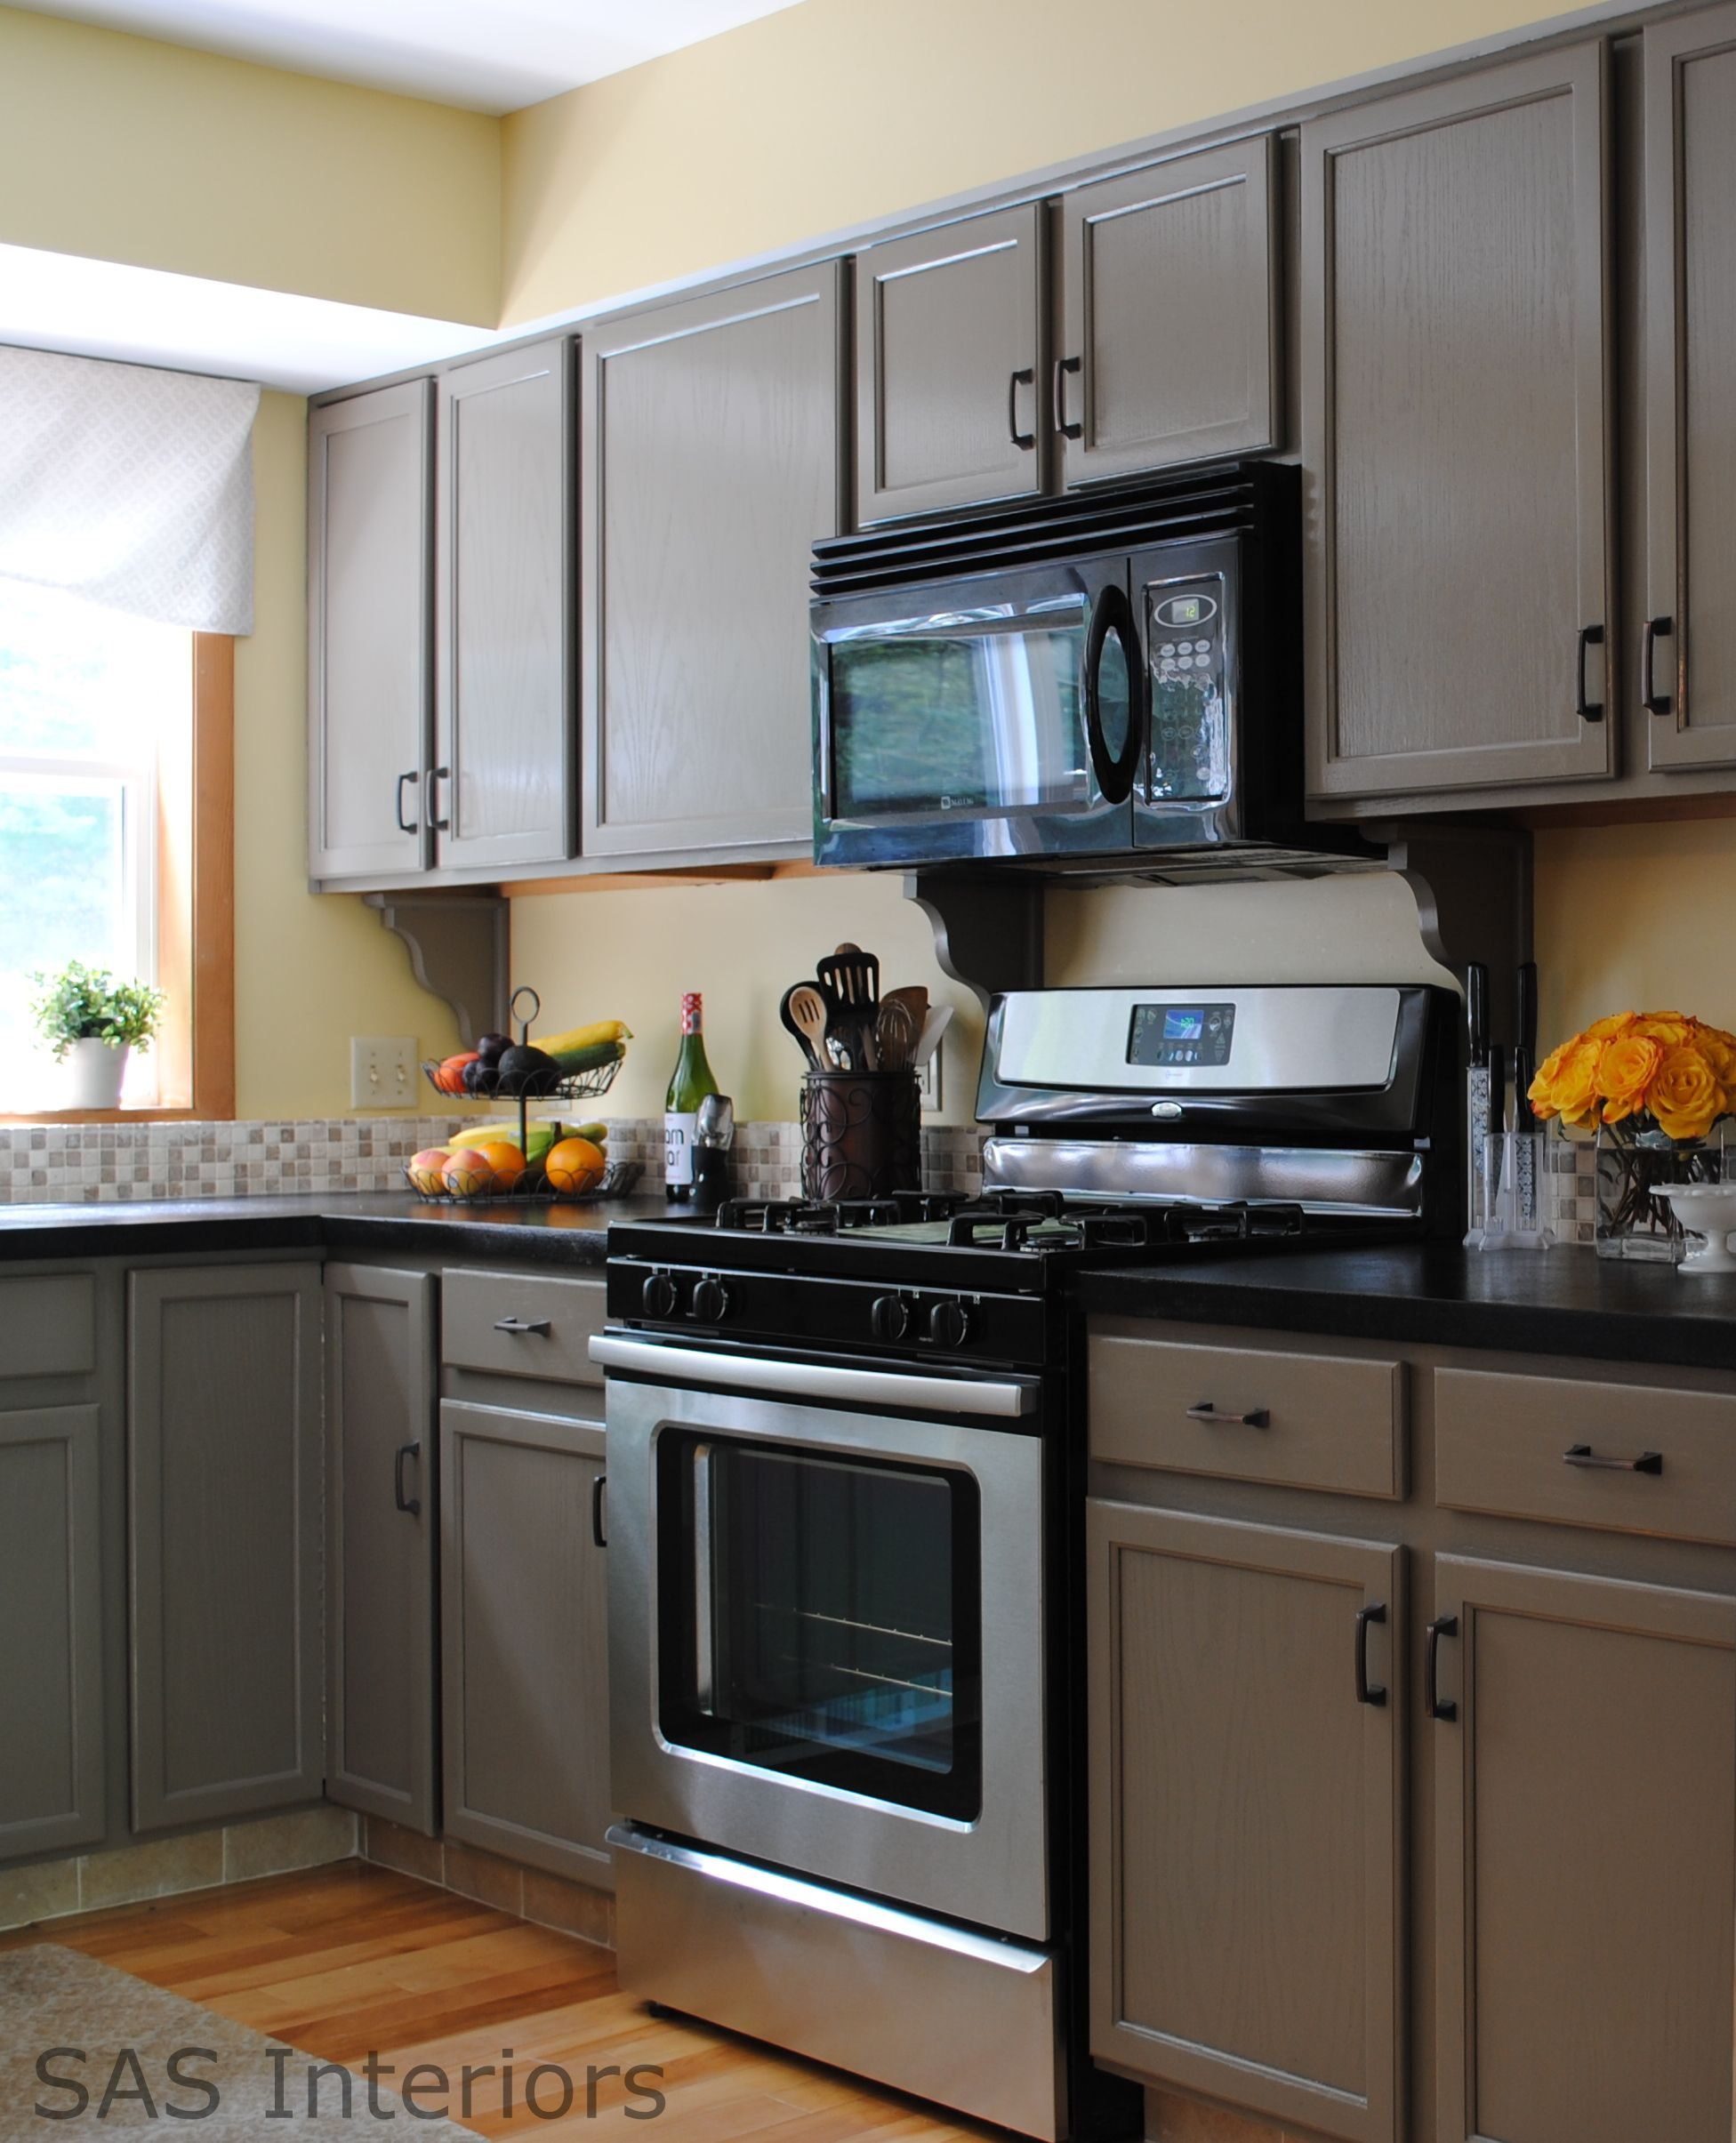 Rustoleum Kitchen Cabinet Transformation Kit A Complete Do It Yourself Kitchen Makeover Using Benjamin